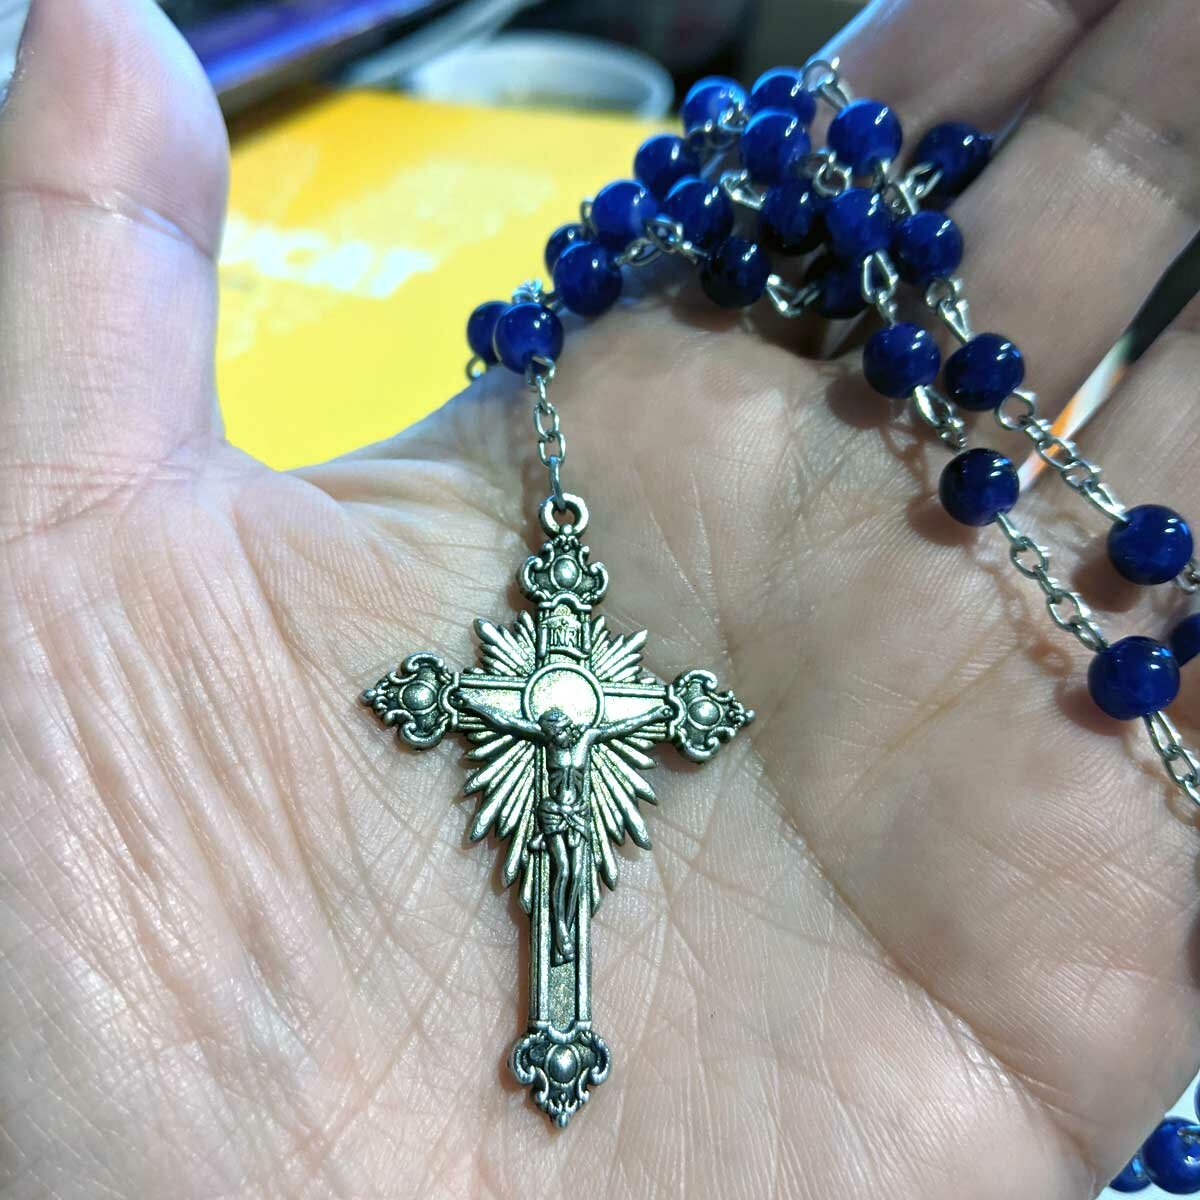 https://journal.yinfor.com/images/rosary-beads.jpg